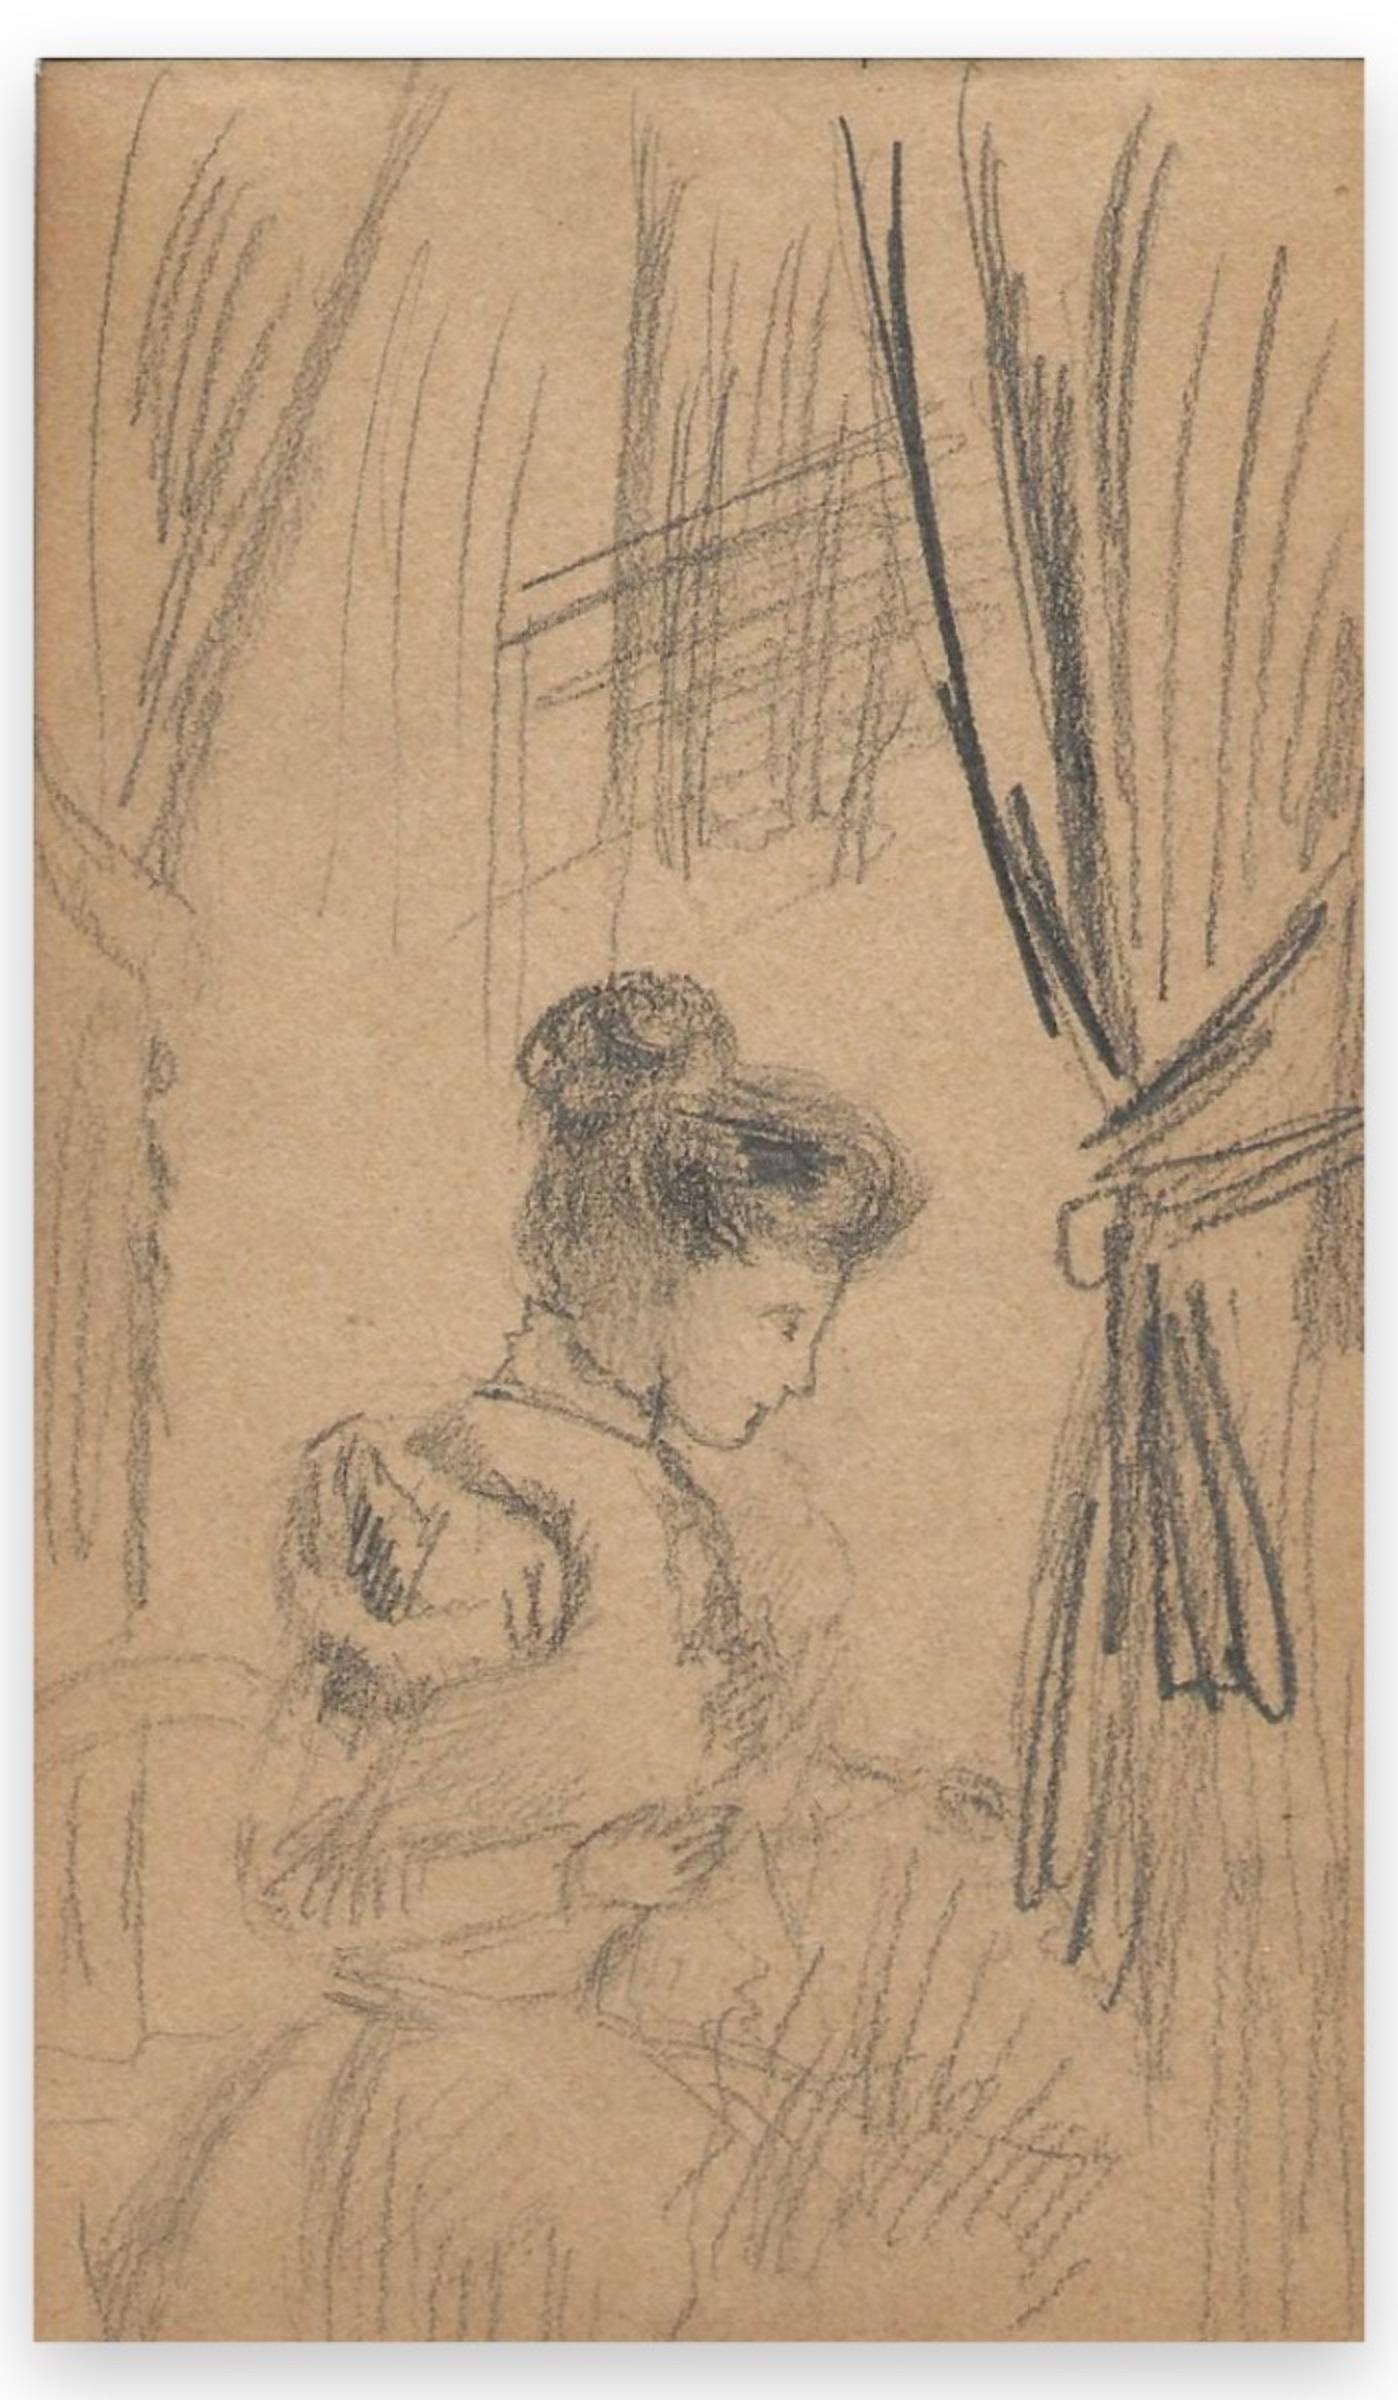 Portrait of a Woman - Original Charcoal Drawing  - Early 20th Century